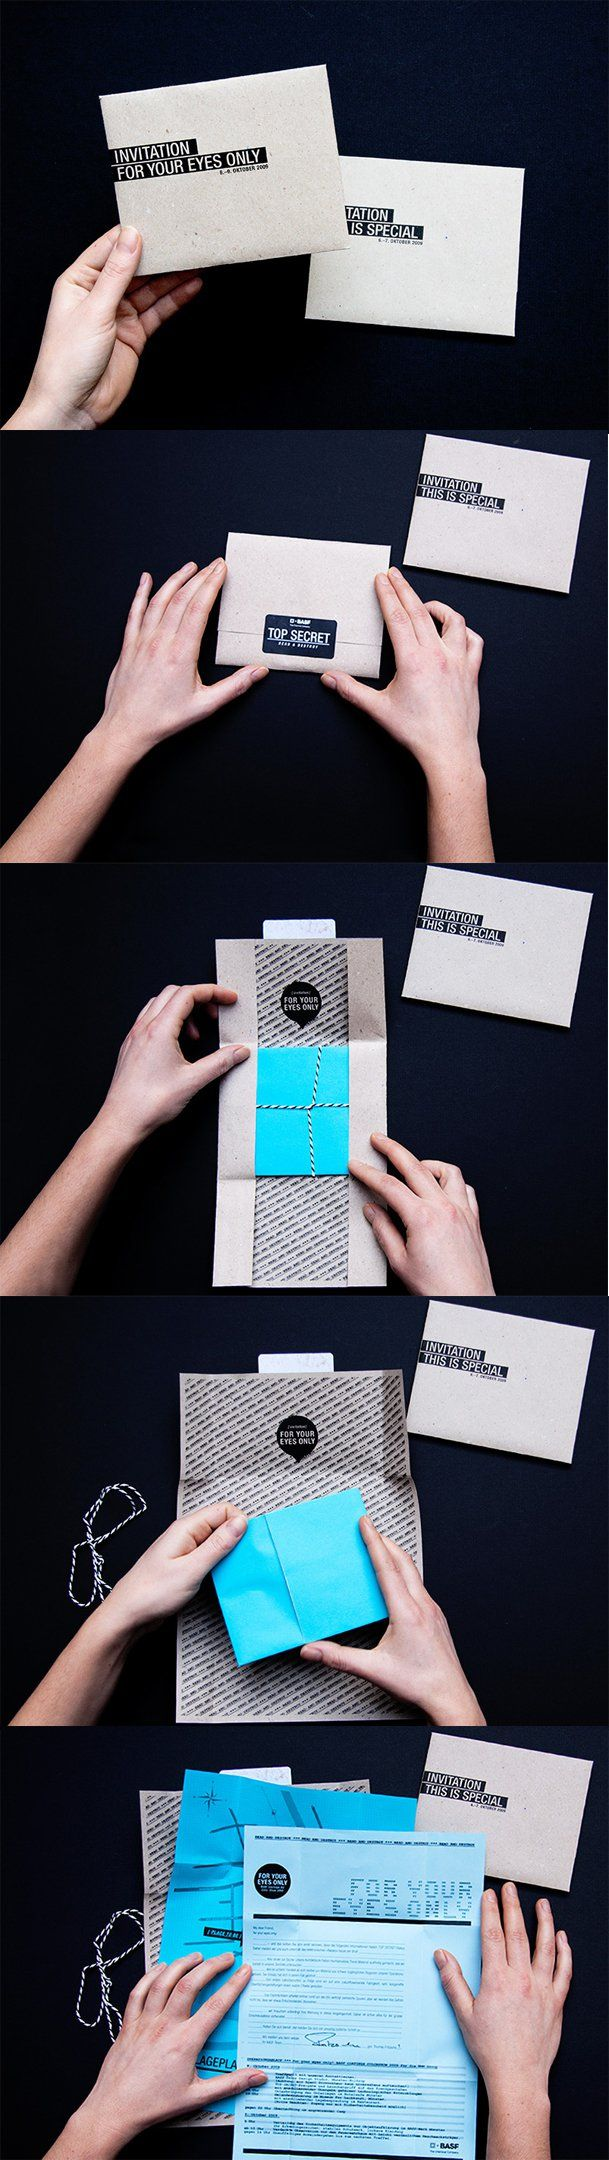 198 best invitation images on pinterest invitations graph design a showcase of 50 beautifully designed print invitations to inspire you stopboris Image collections